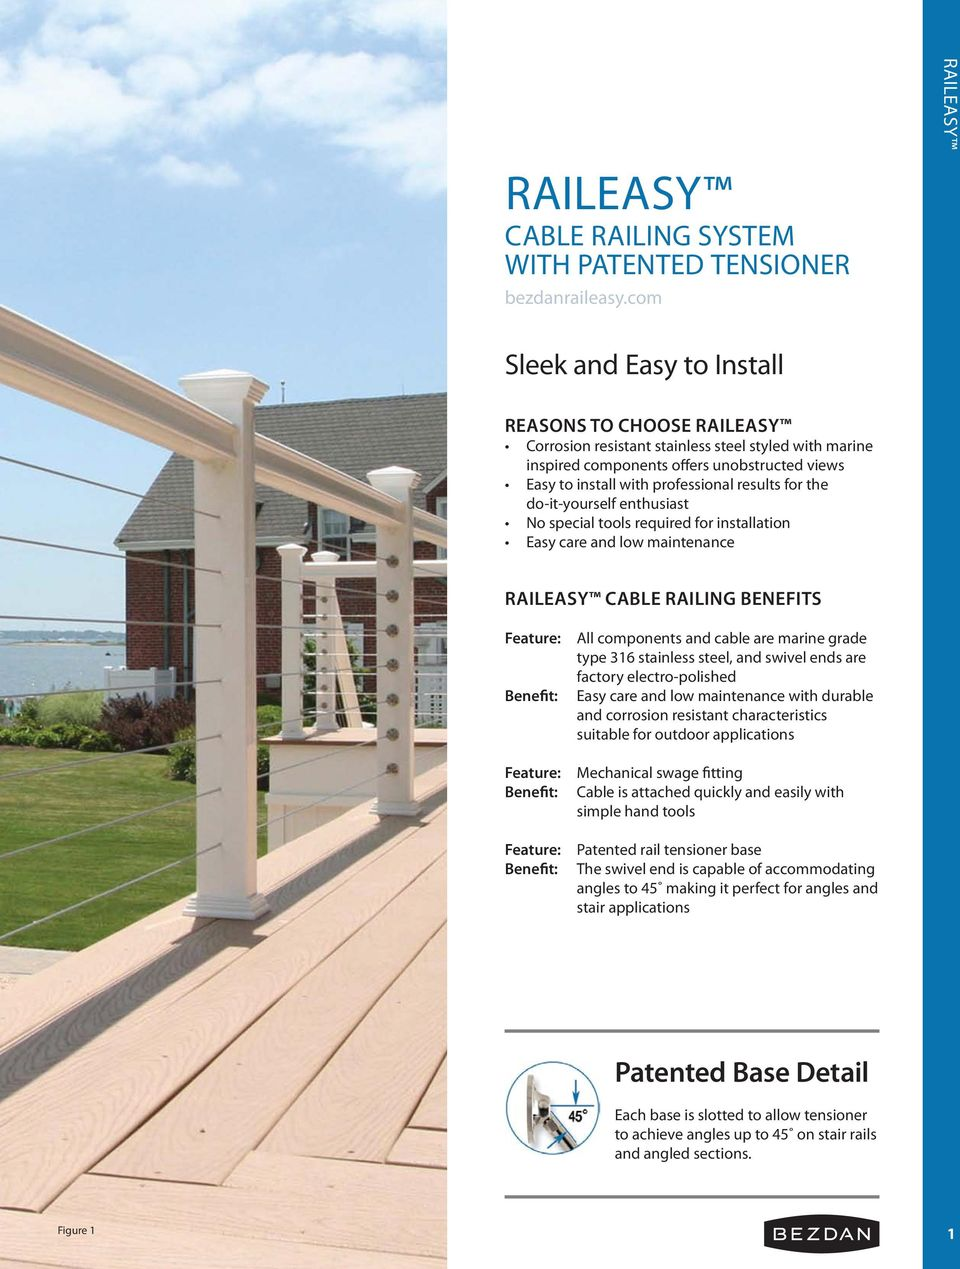 Raileasy Cable Railing system with patented tensioner - PDF